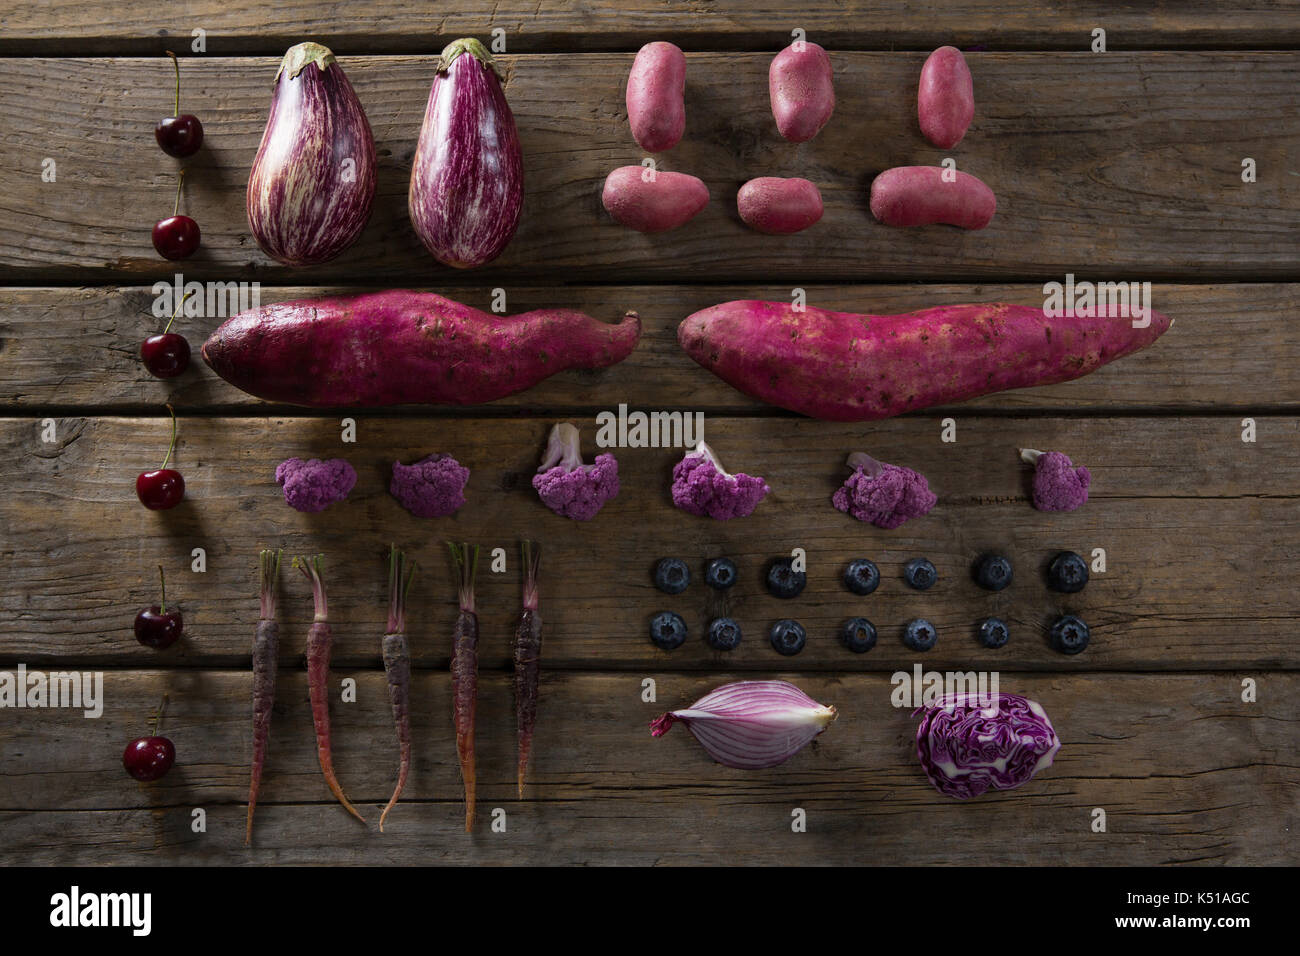 Overhead view of various vegetable arranged on wooden table - Stock Image